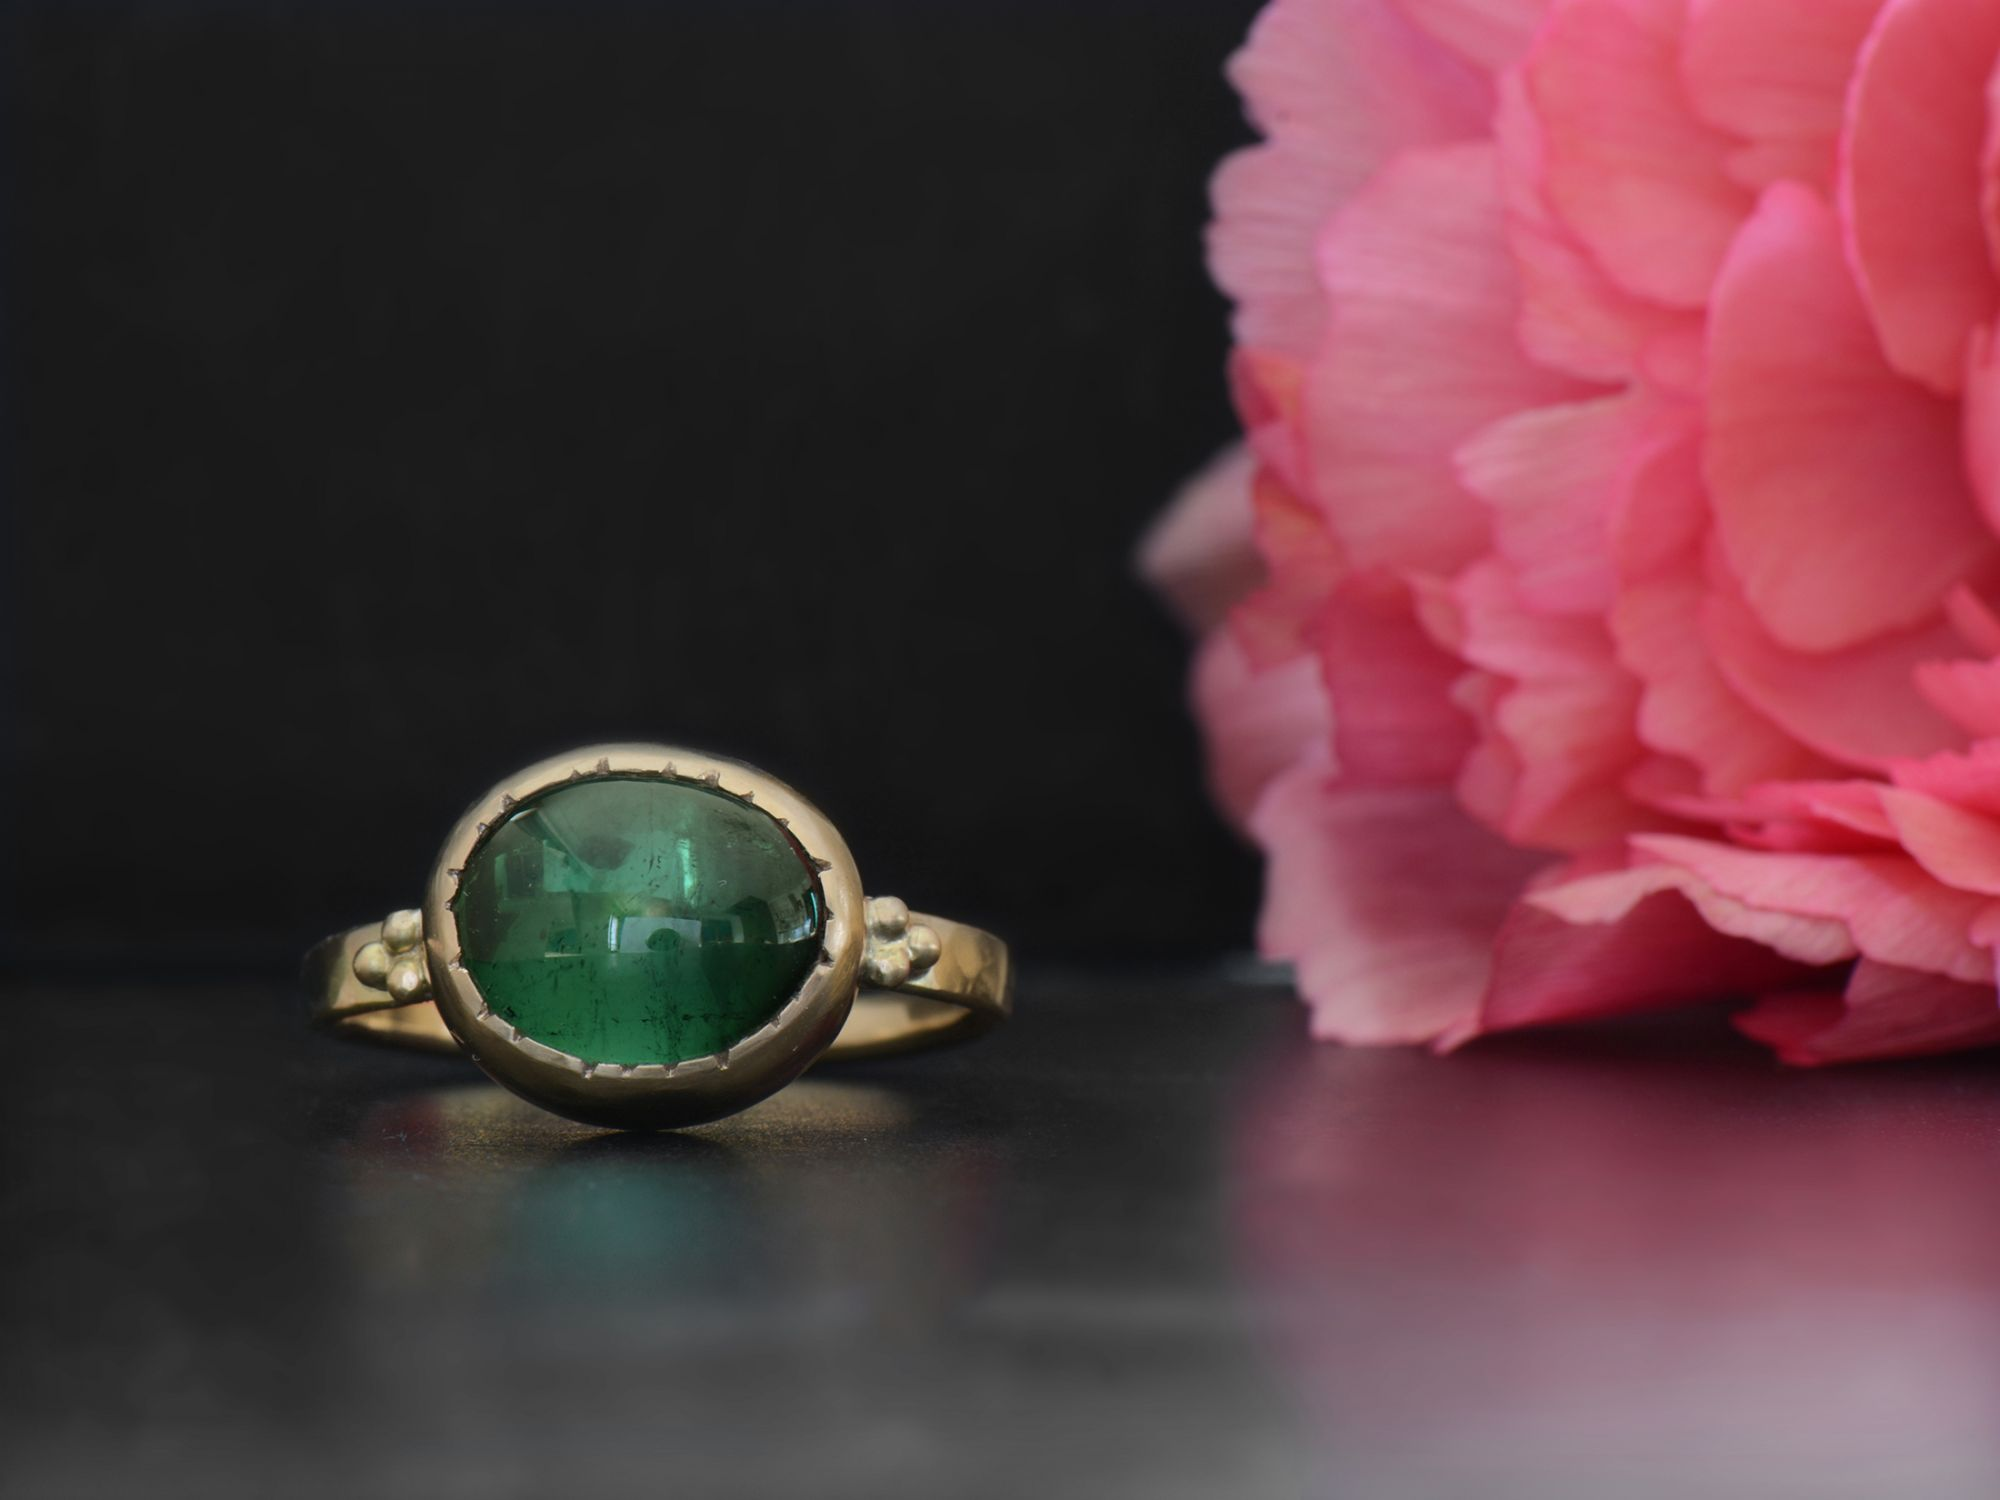 Queen B yellow gold and oval green tourmaline ring by Emmanuelle Zysman